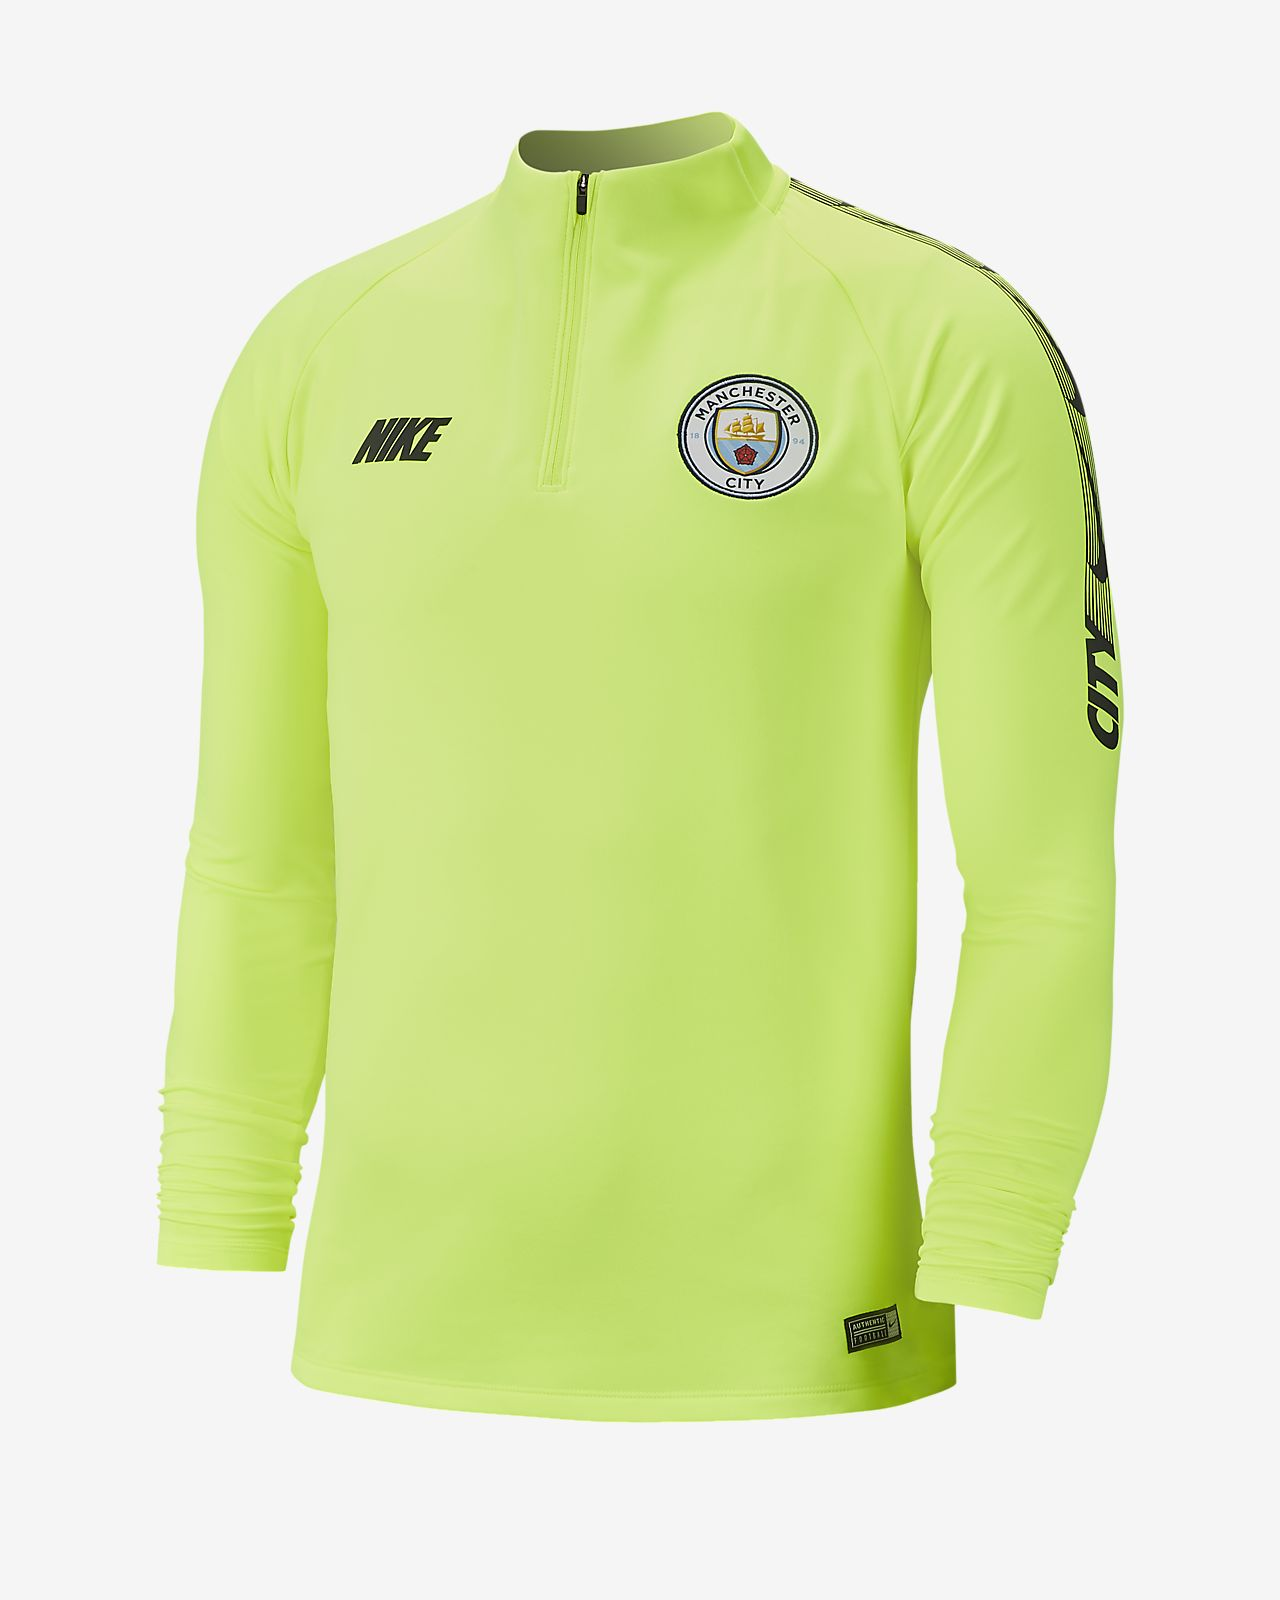 8051ceae Men's Long-Sleeve Football Top. Manchester City FC Dri-FIT Squad Drill